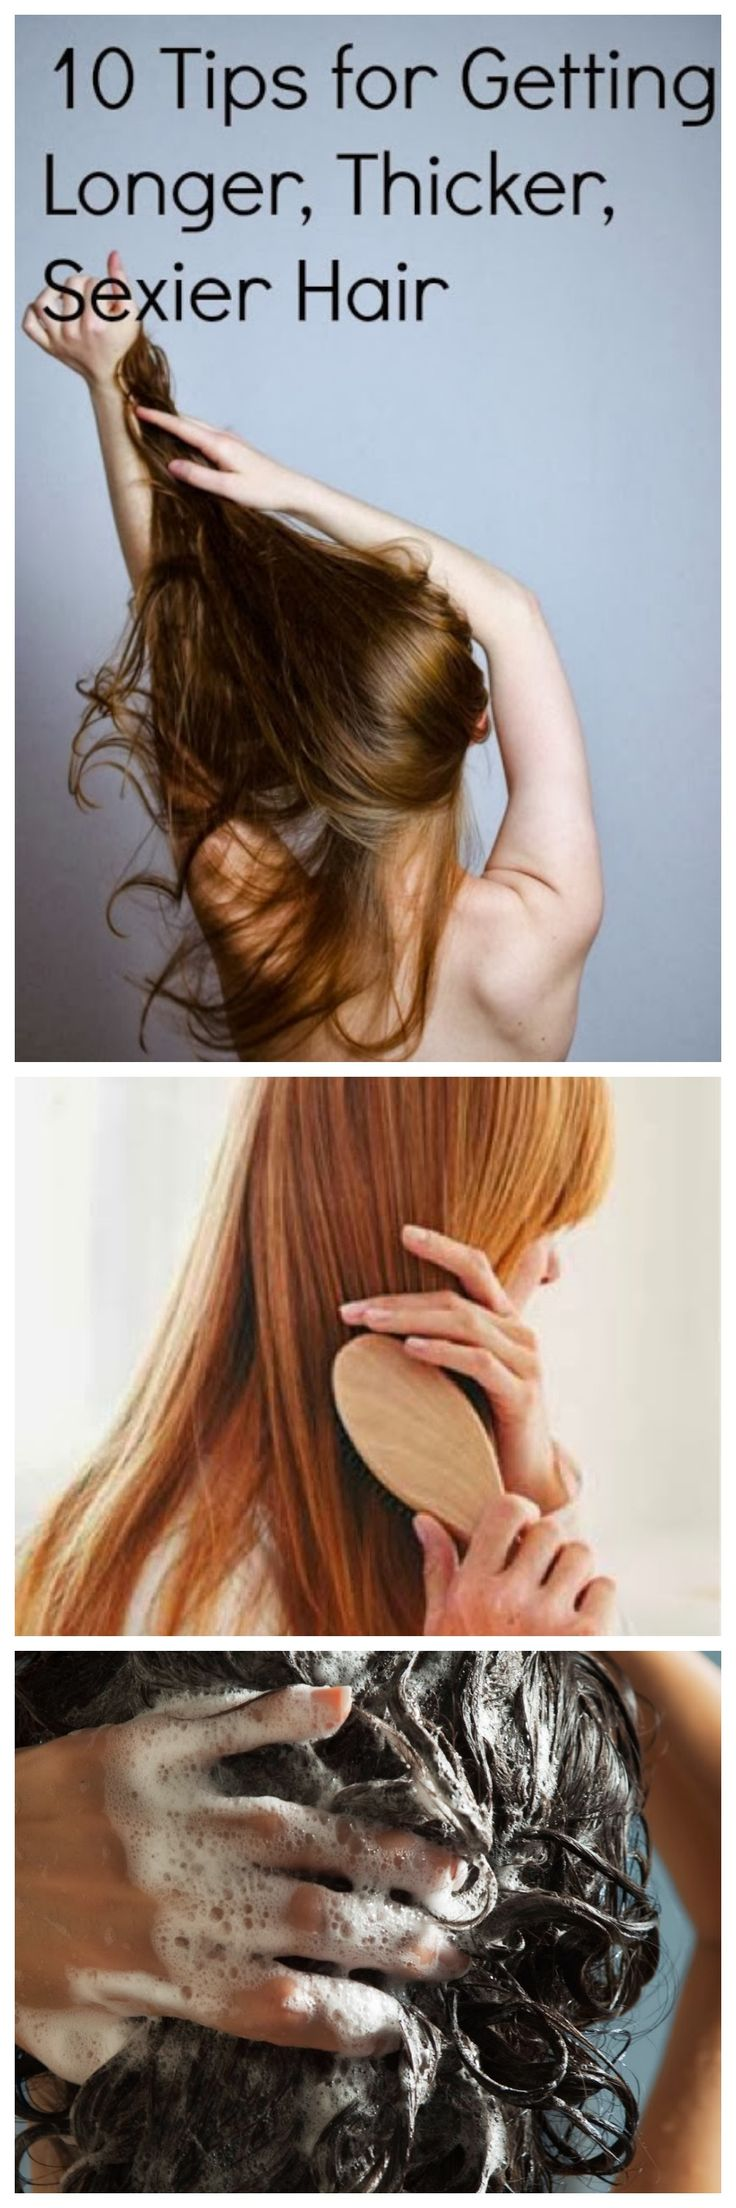 10 Tips for Getting Longer,Thicker, Sexier Hair ...... 1) Hair mask 2) protein 3)Brush your hair 4) Massage your scalp 5) Warm oil scalp massage 6) Care for your hair while you sleep 7) Try castor oil hair treatment 8) Vinegar rinse .........